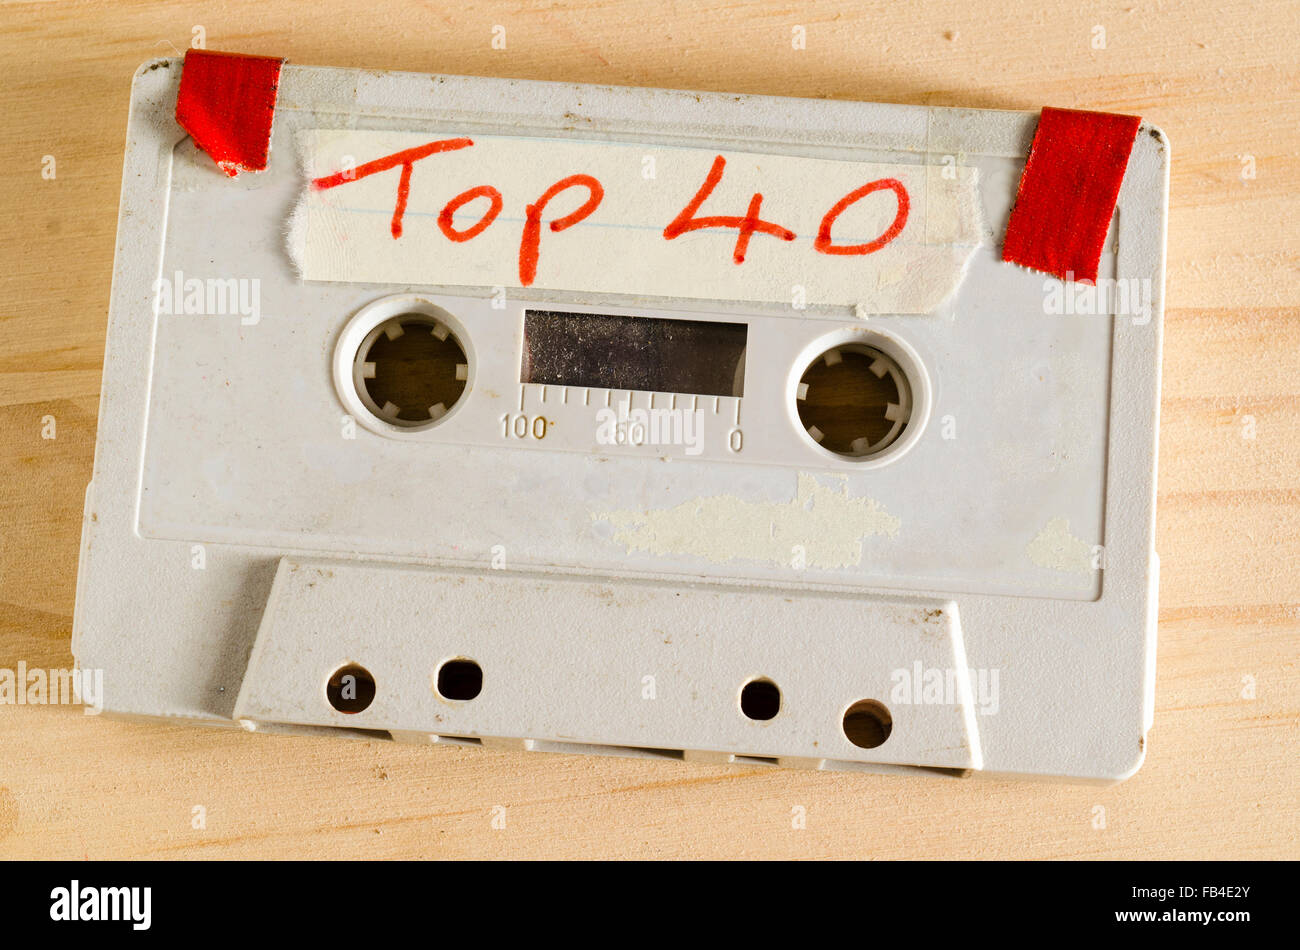 Audio Cassette Tape containing songs recorded from the weekly Sunday Night Top 40 Music Chart Show - Stock Image